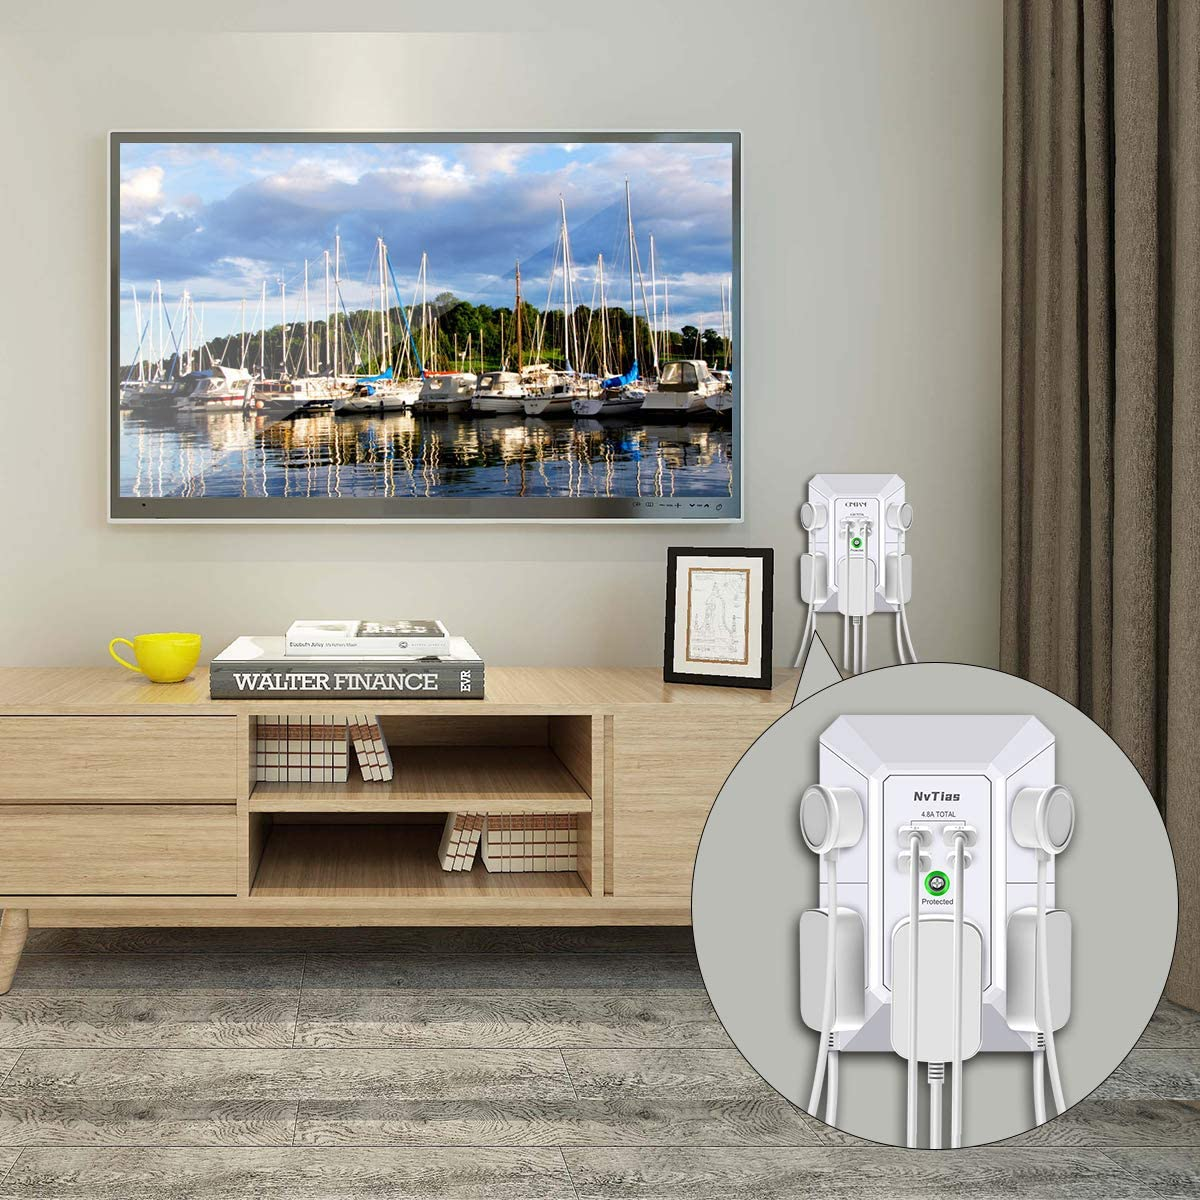 Multi Plug Outlets,Surge Protector, NvTias USB Wall Charger with 4 USB Charging Ports(4.8A Total,1 Type C) 3-Prong 1680J Power Strip Wall Adapter Spaced for Home ,Office,White